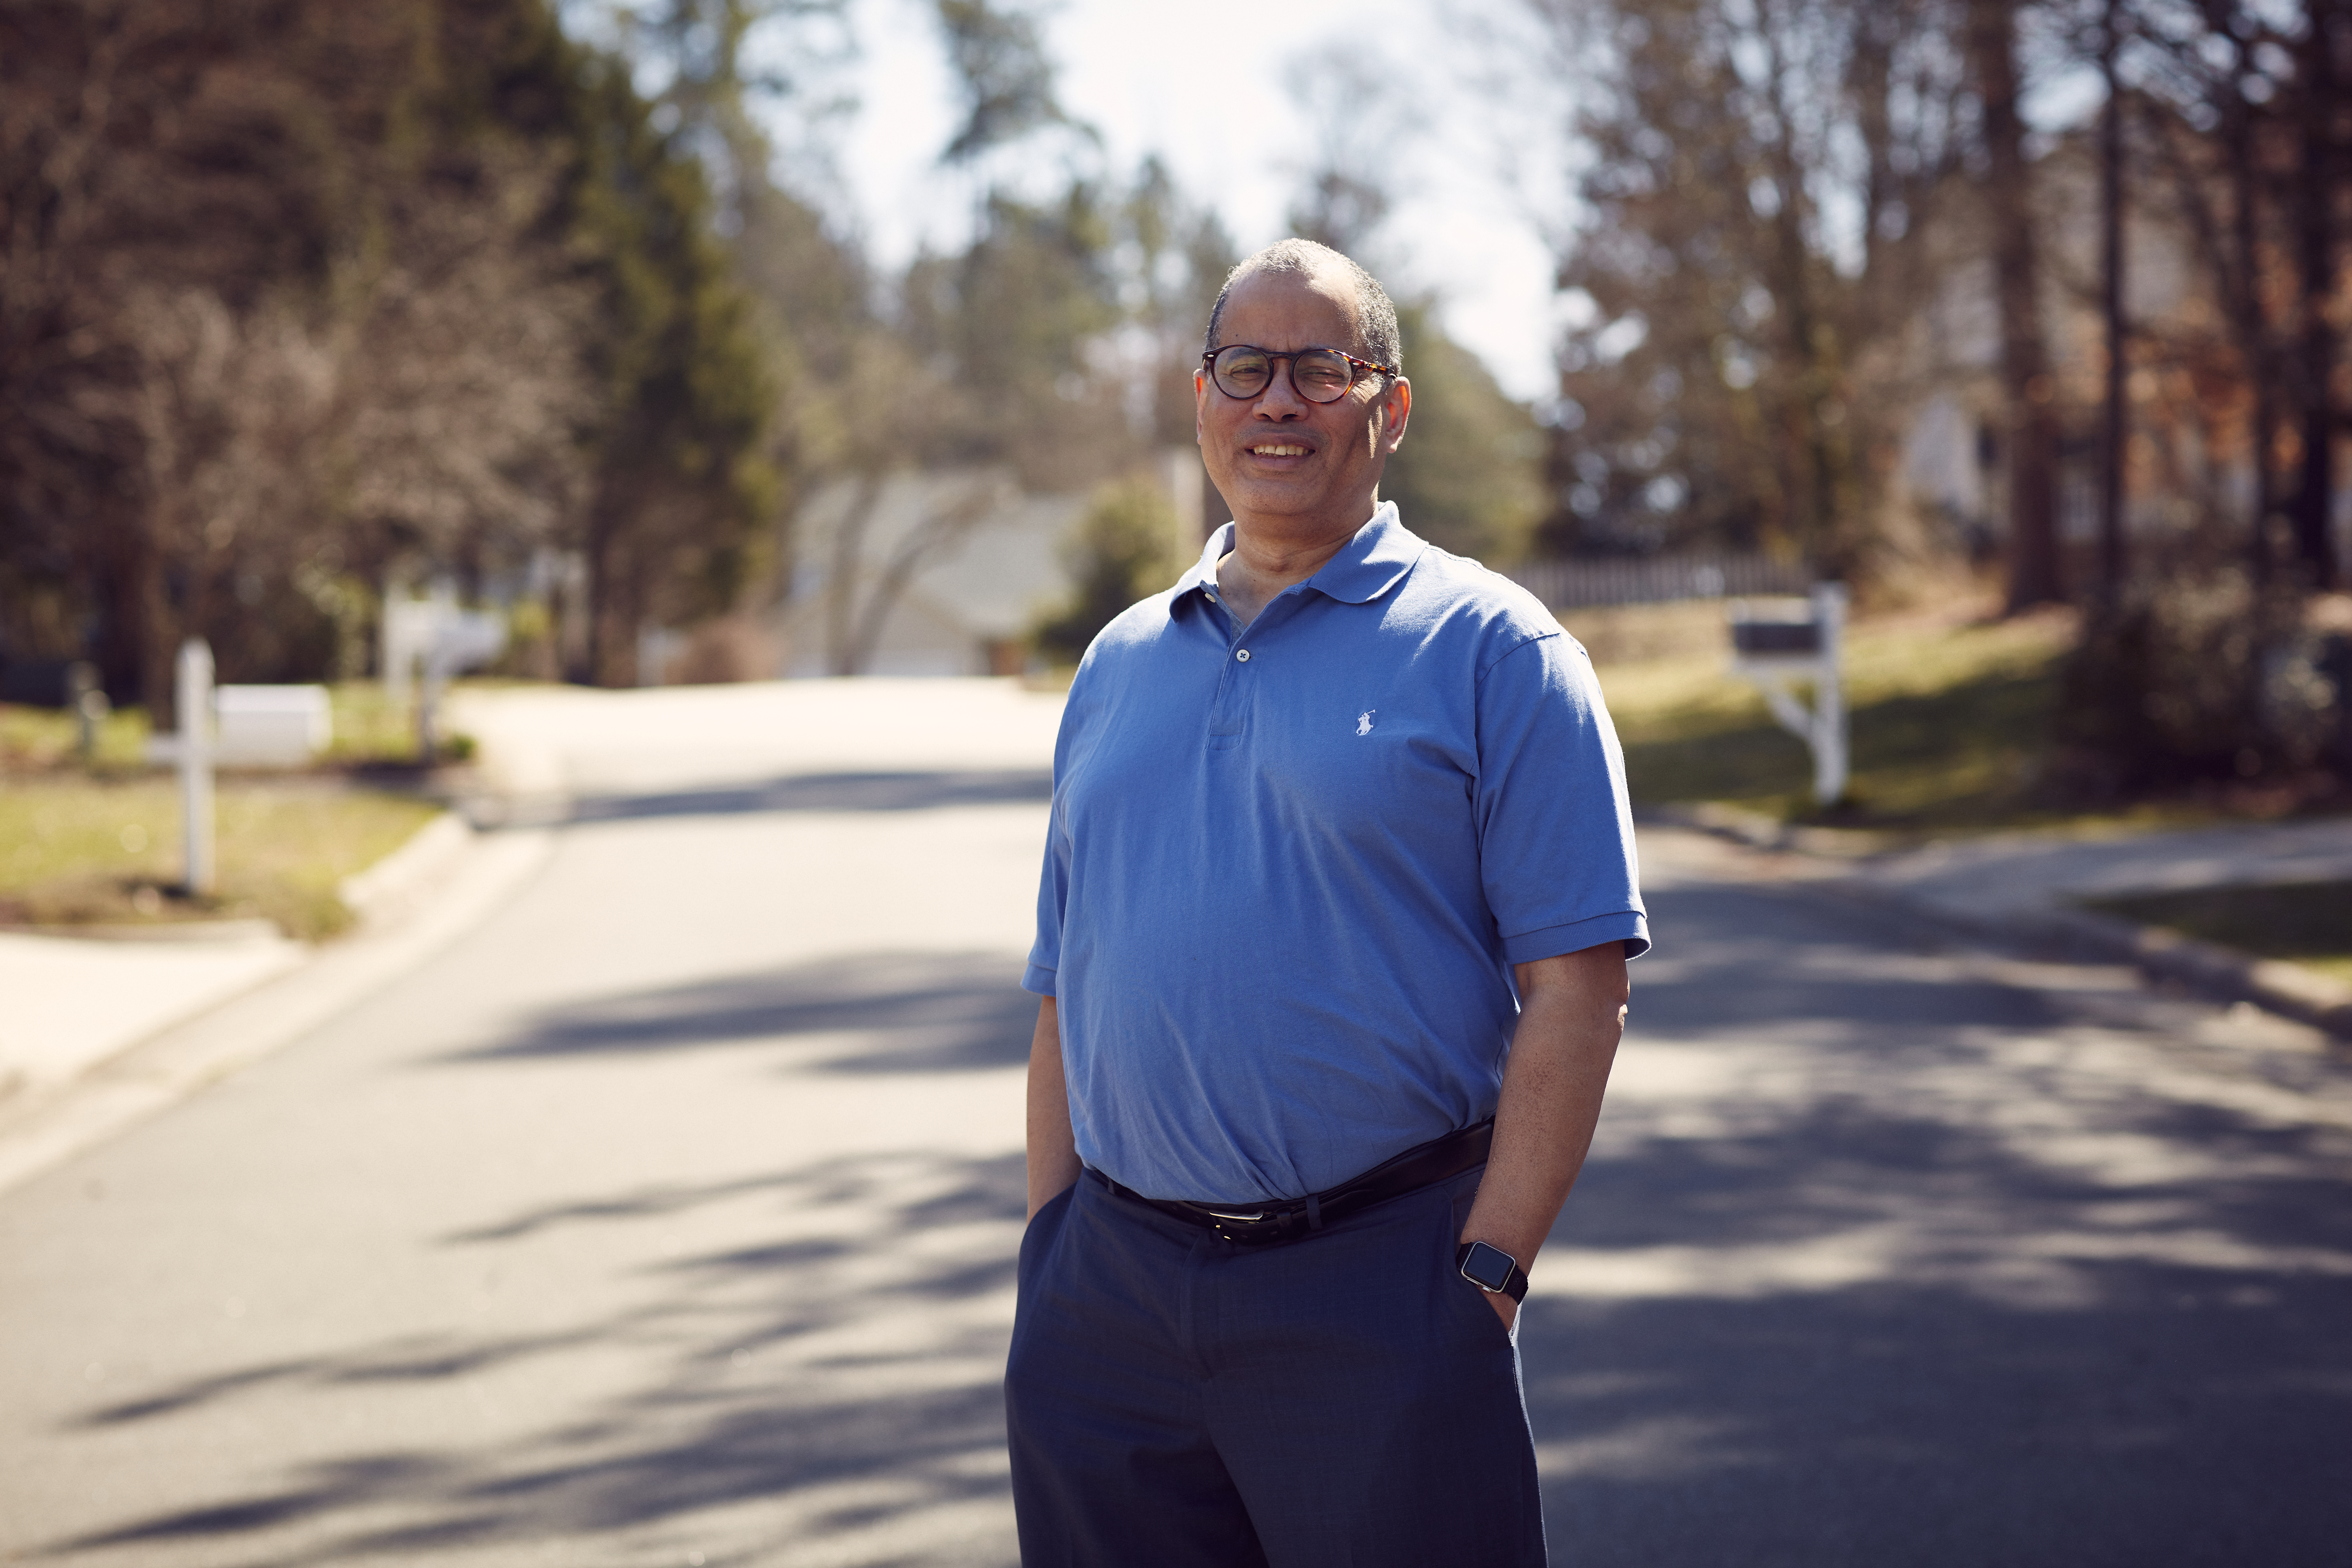 Paul Miller stands in his neighborhood street, smiling, with his hands in his pockets